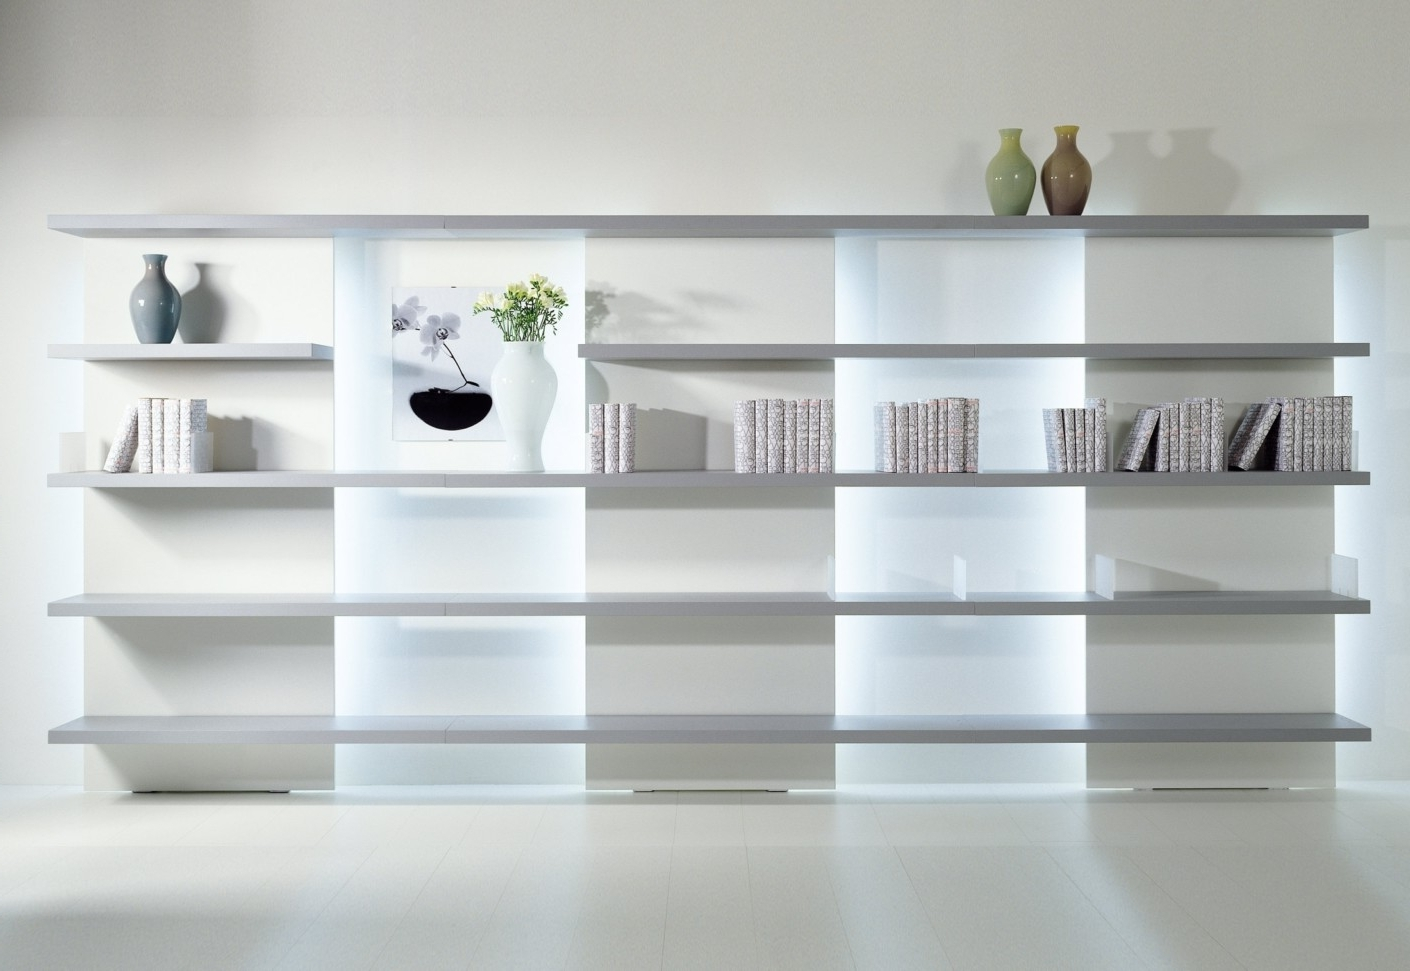 Full Wall Shelving Units Within Widely Used Wall Units Glamorous Wall Shelf Units Hd Wallpaper Photos Wall (View 10 of 15)